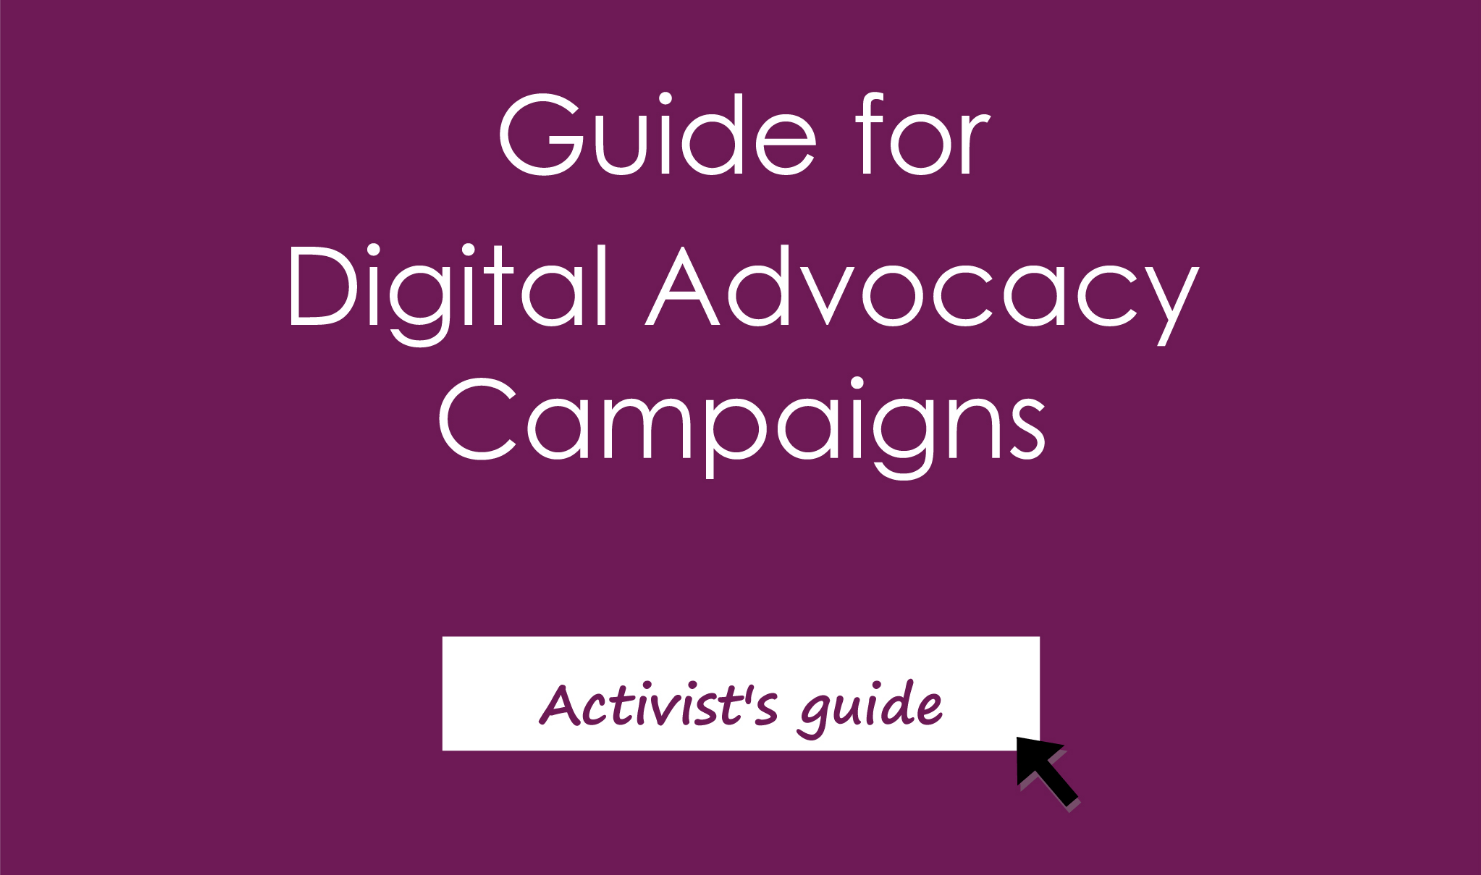 Guide for Digital Advocacy Campaigns